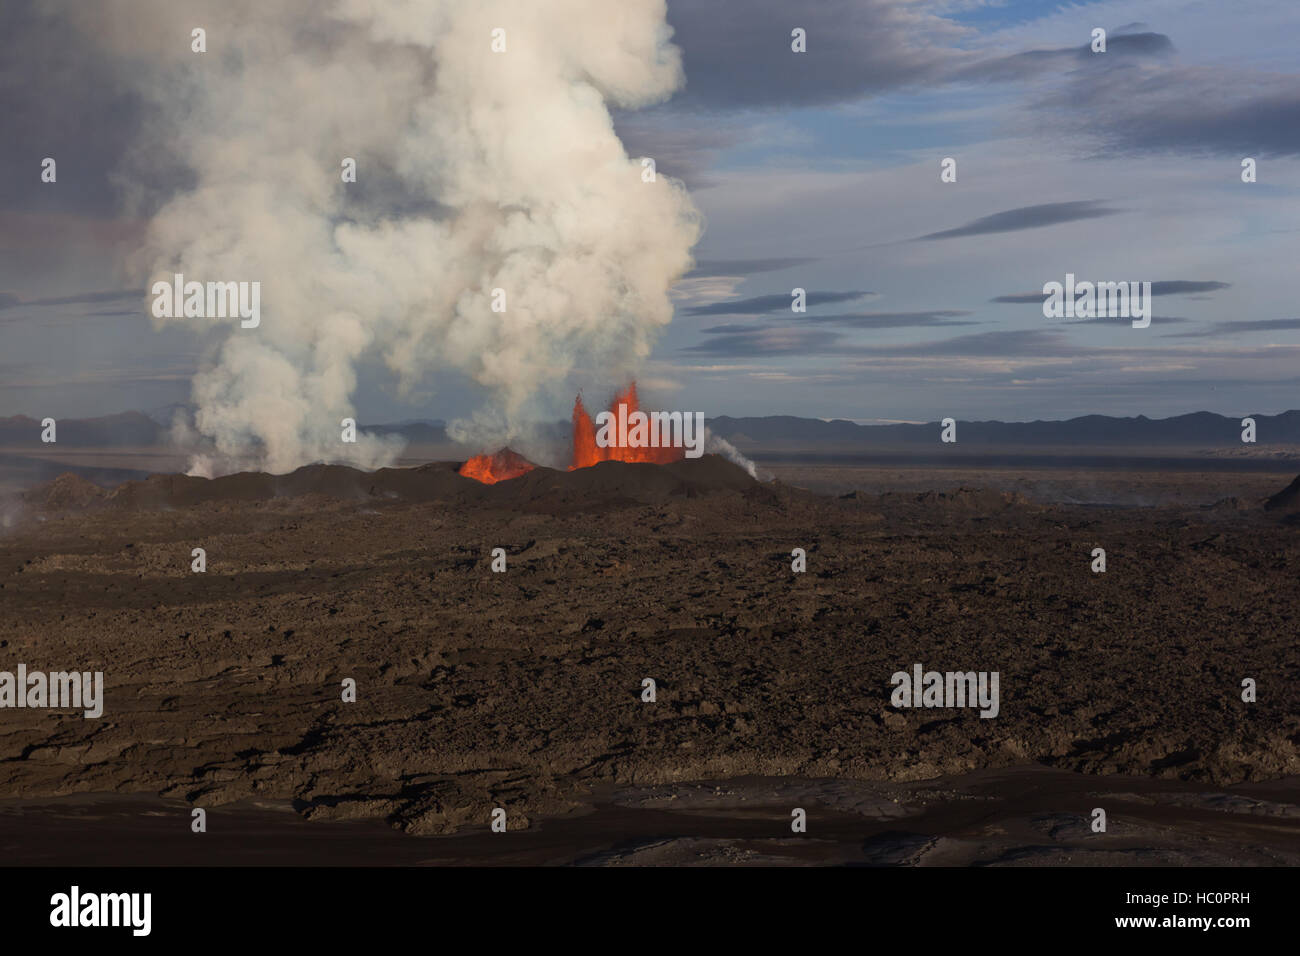 Holuhraun Iceland Volcano in Iceland september 2014 - Stock Image